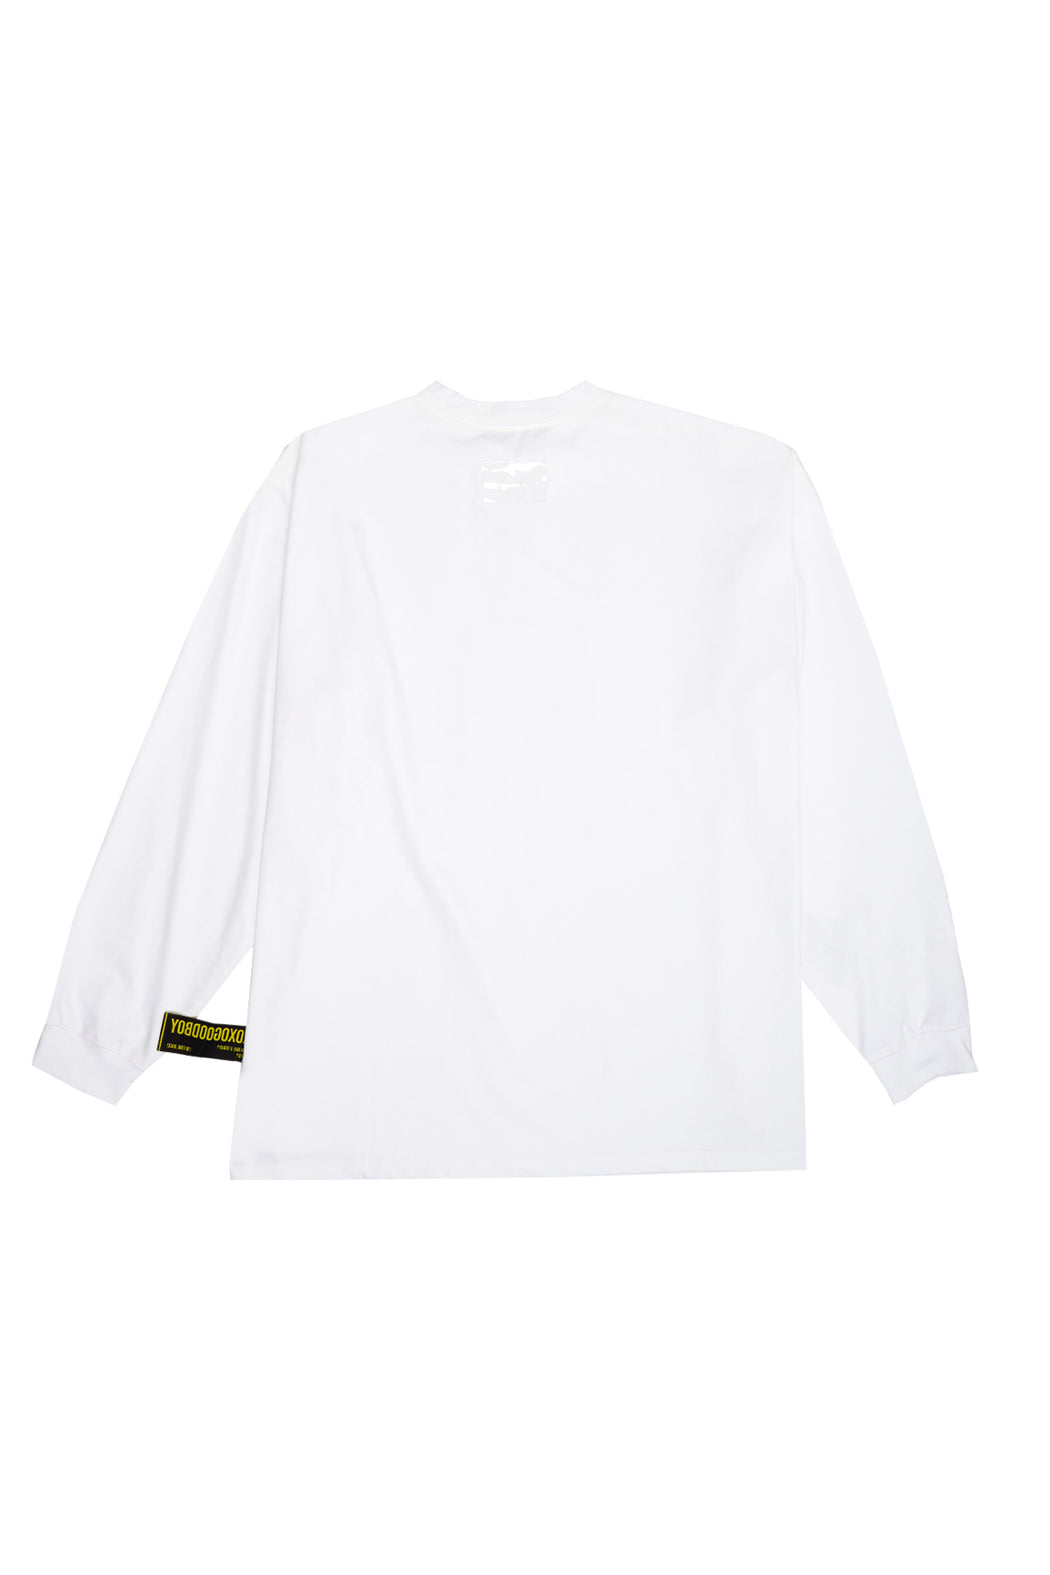 PVC Long Sleeve Tee - White